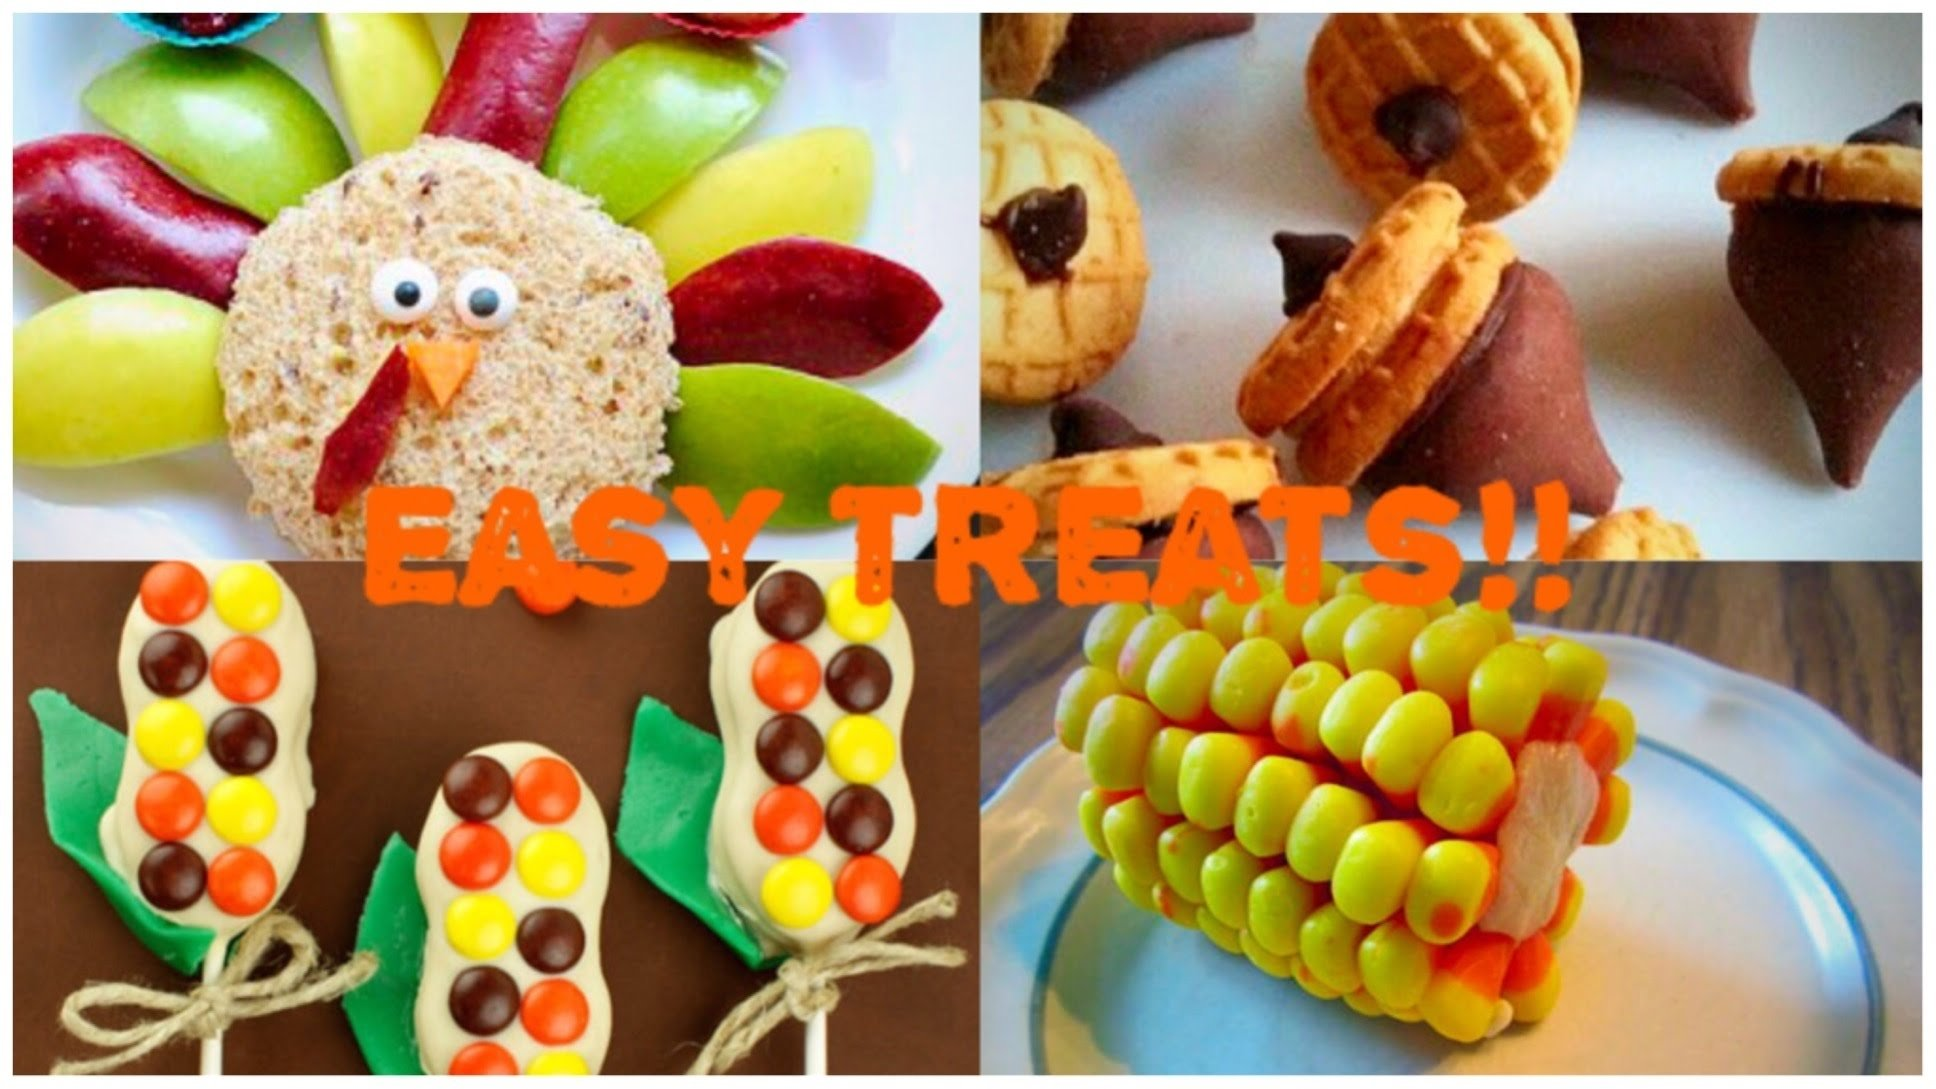 easy diy no bake thanksgiving treat ideas! (great for kids!) - youtube